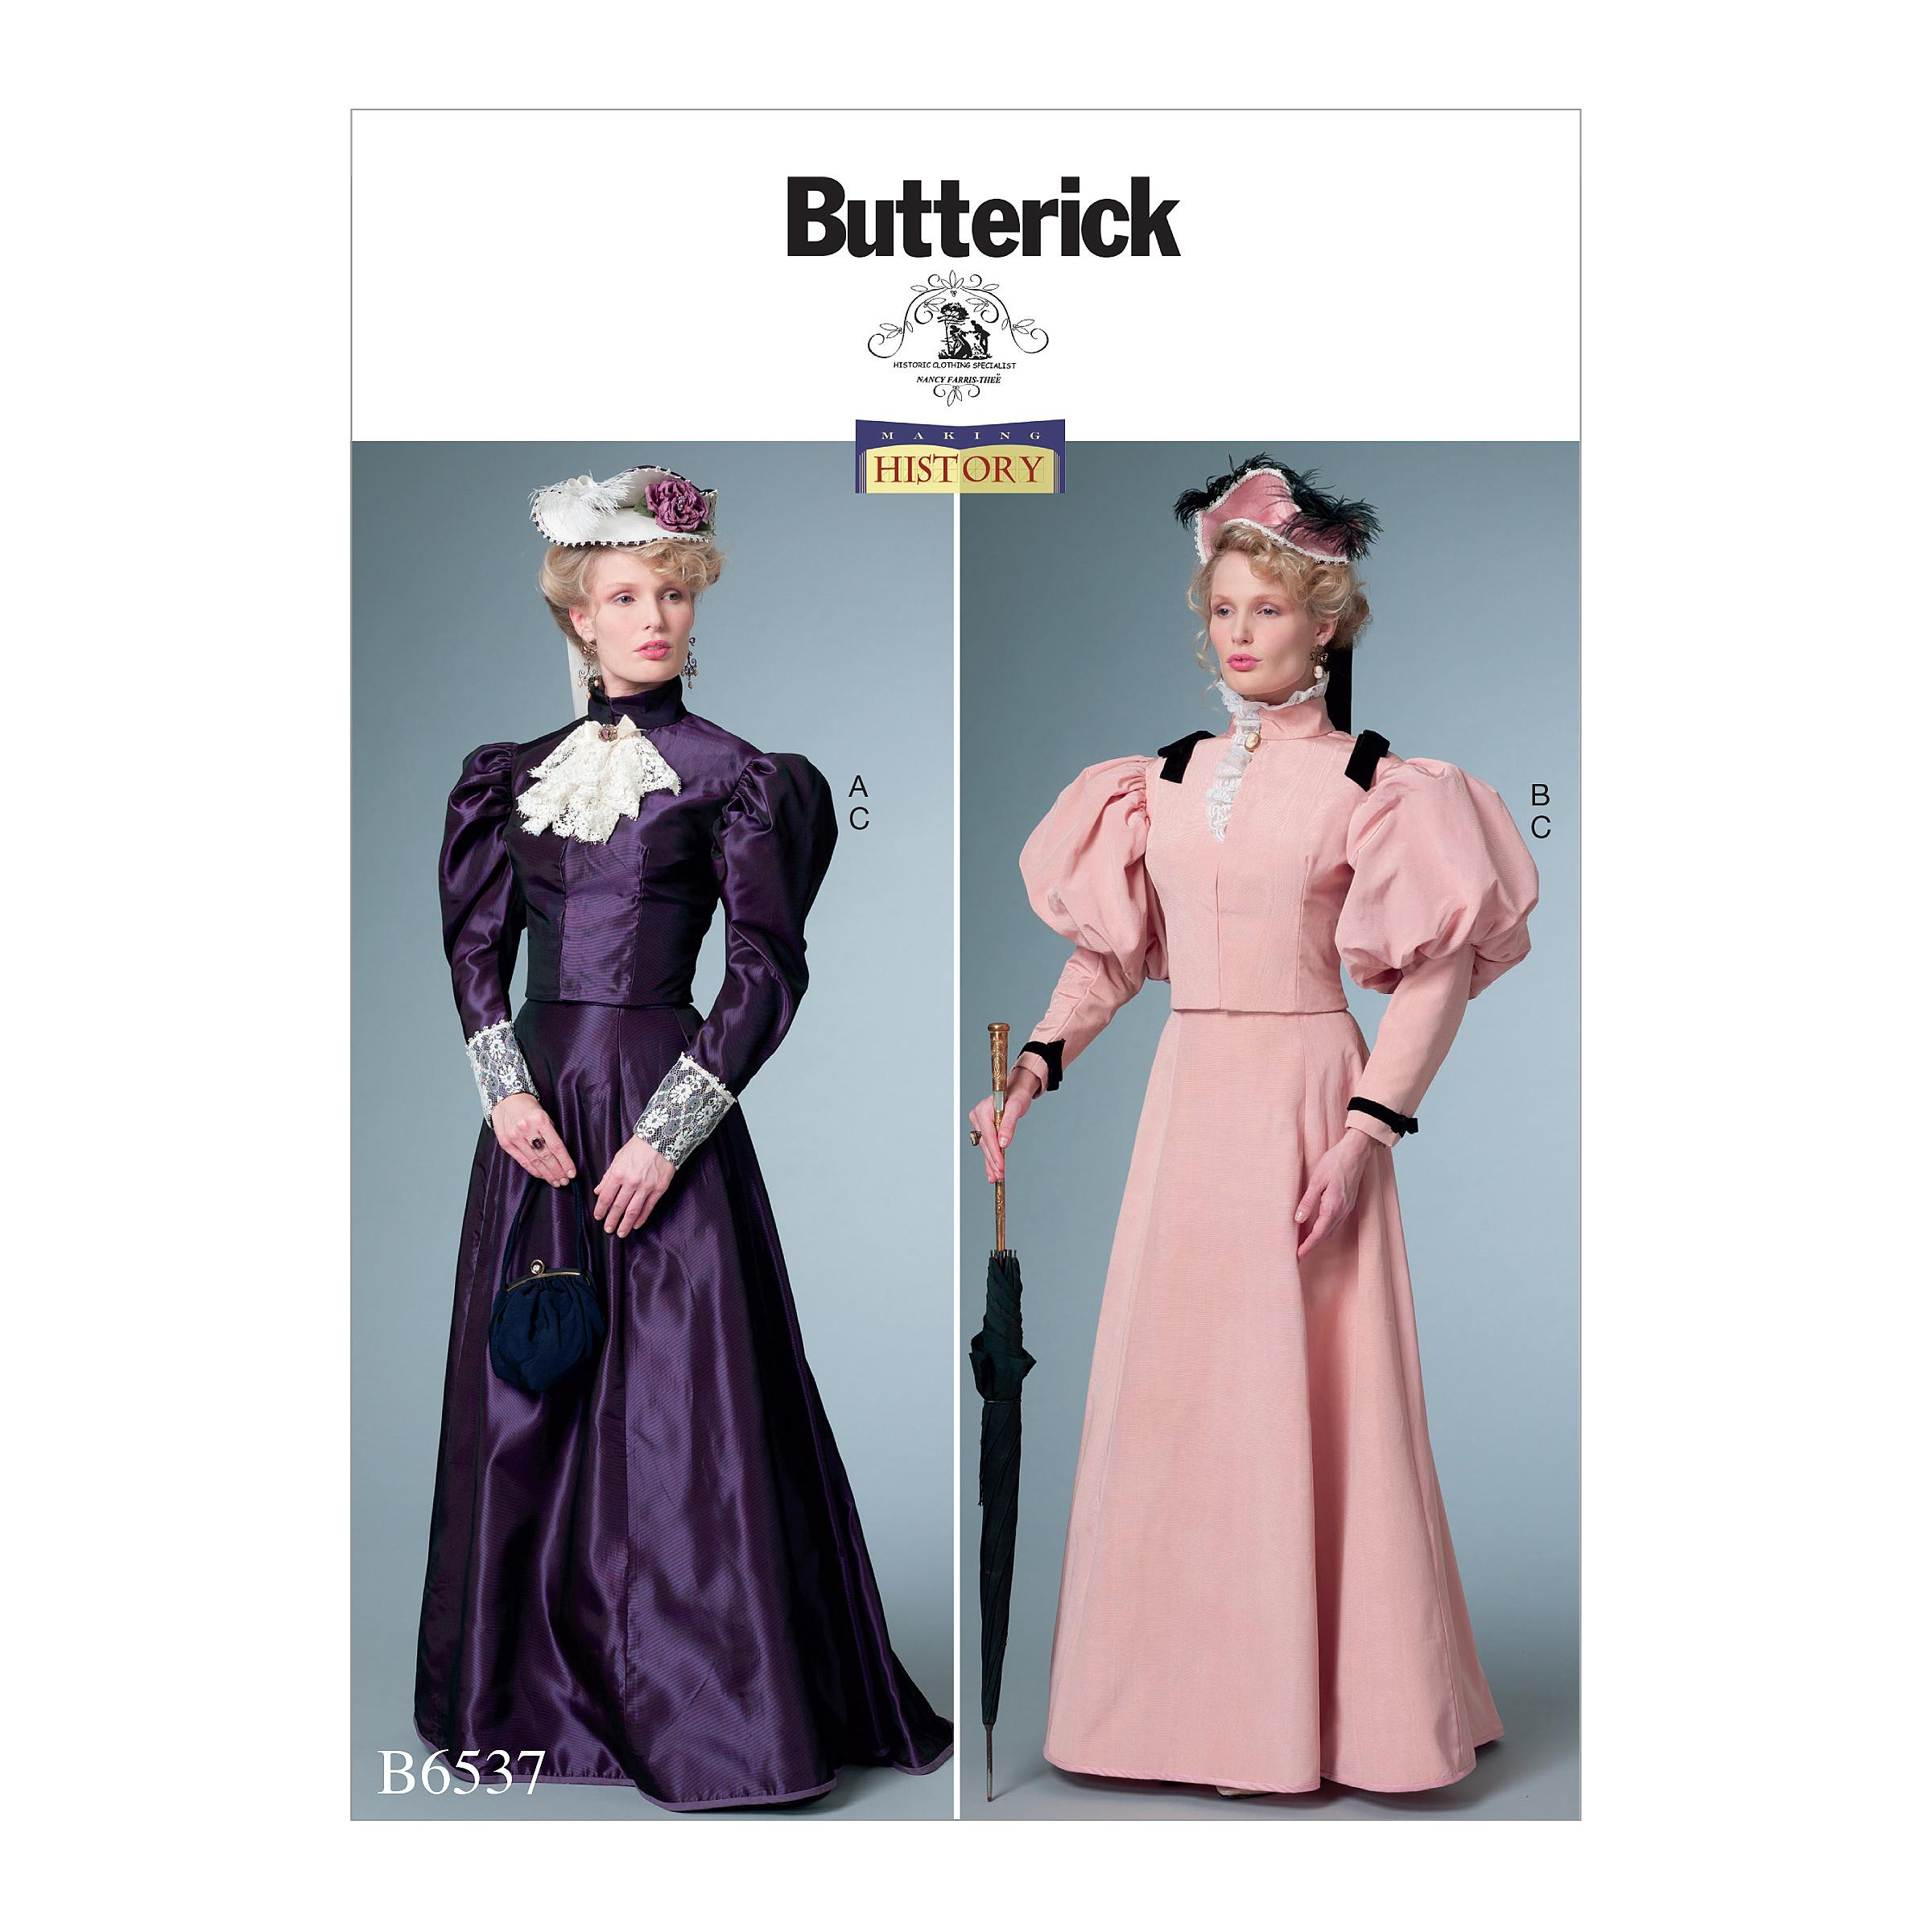 Butterick B6537 Misses' Costume